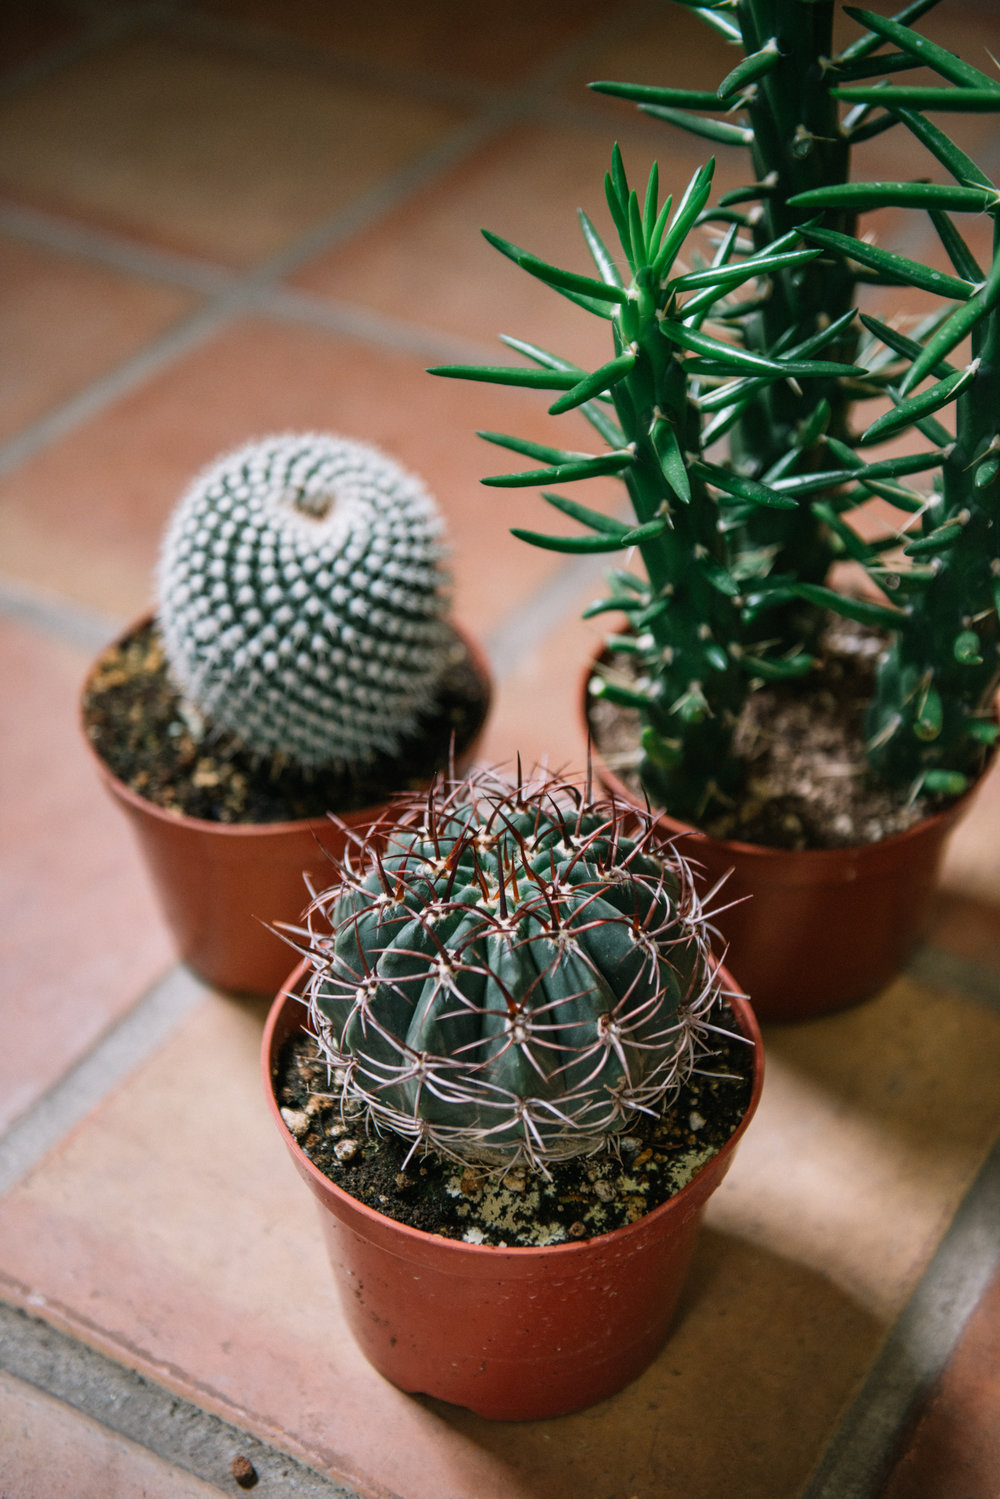 Mission de Flores | Plant Cactus Shop San Francisco